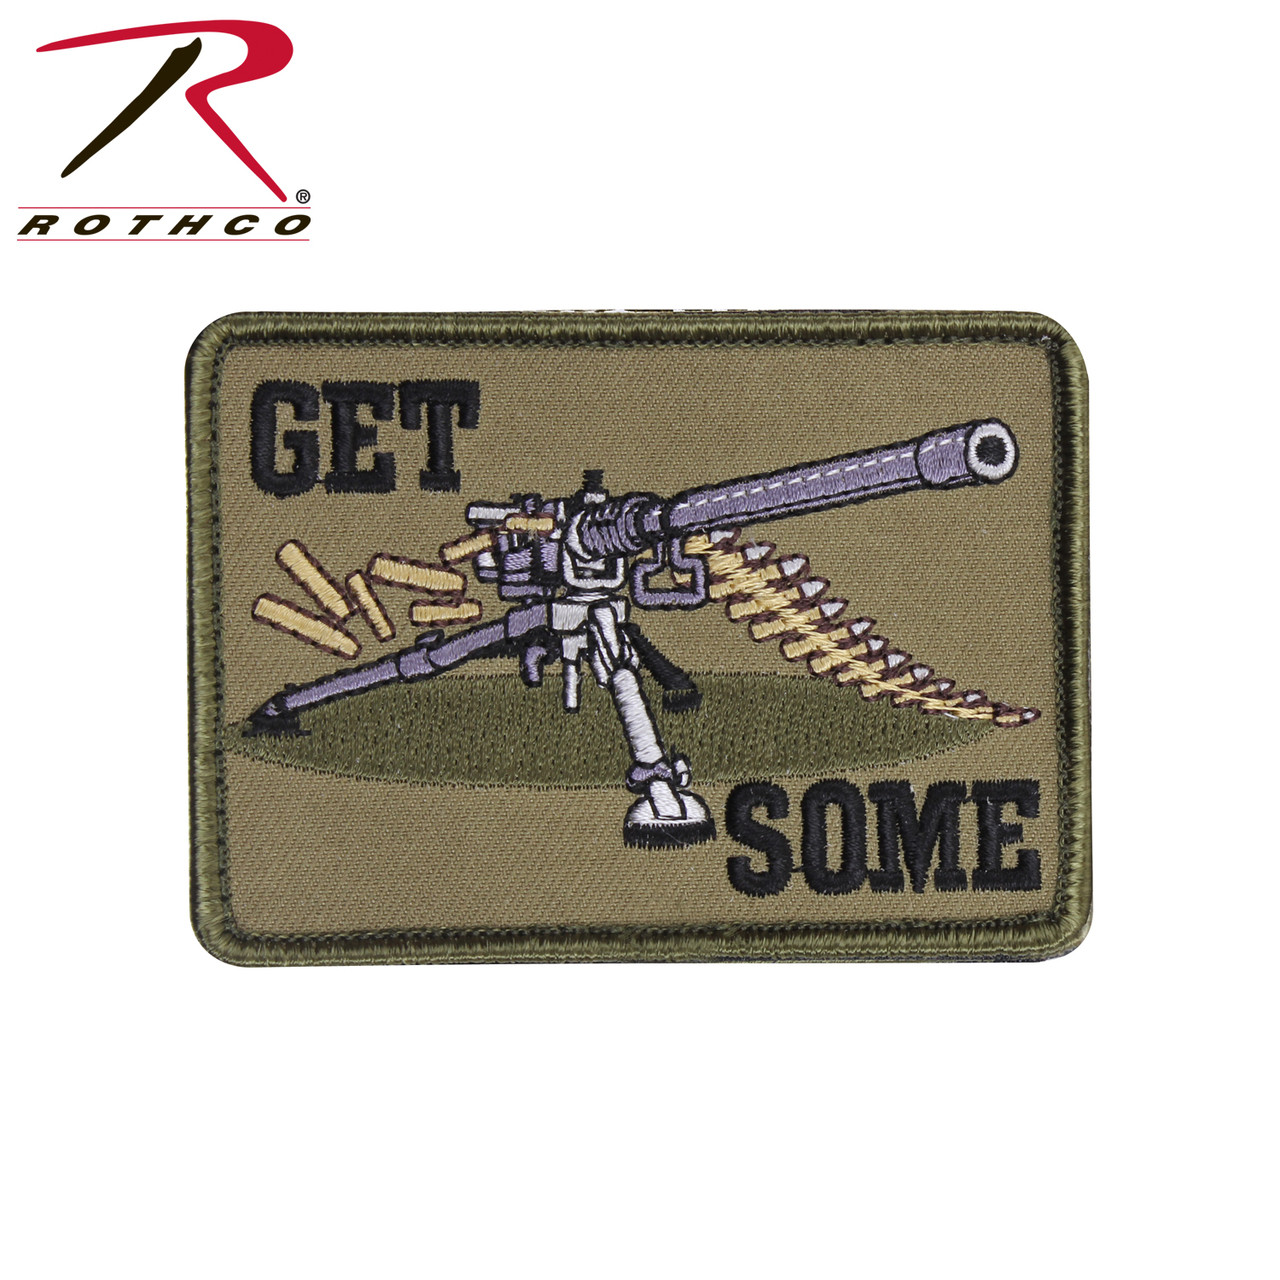 Rothco Patch Infidel Shoulder